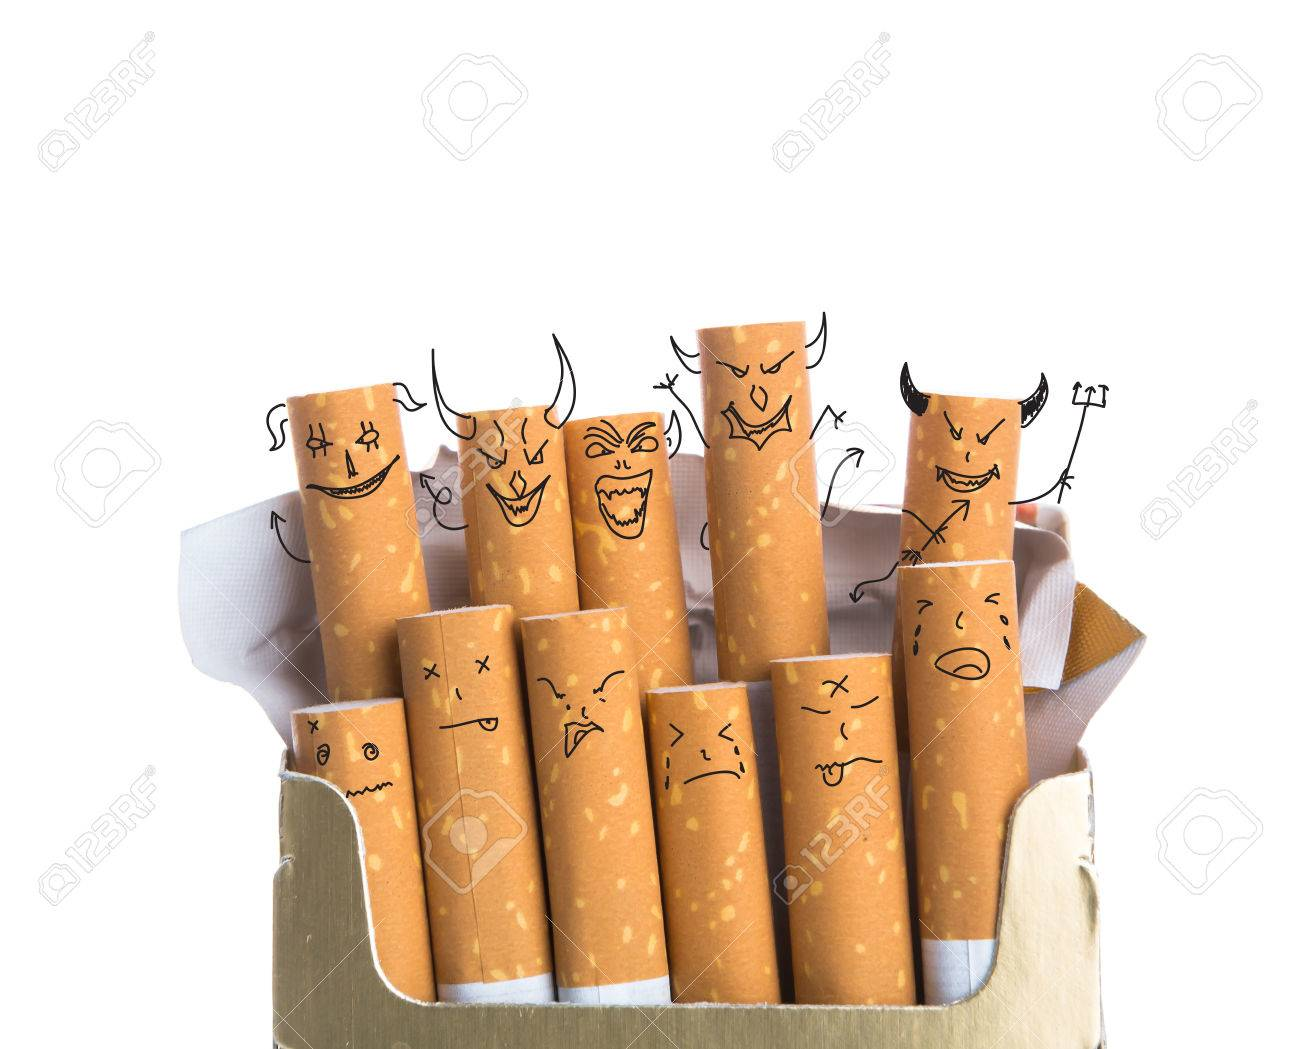 Box of cigarettes with Devil Face isolated on a white background - 40399911